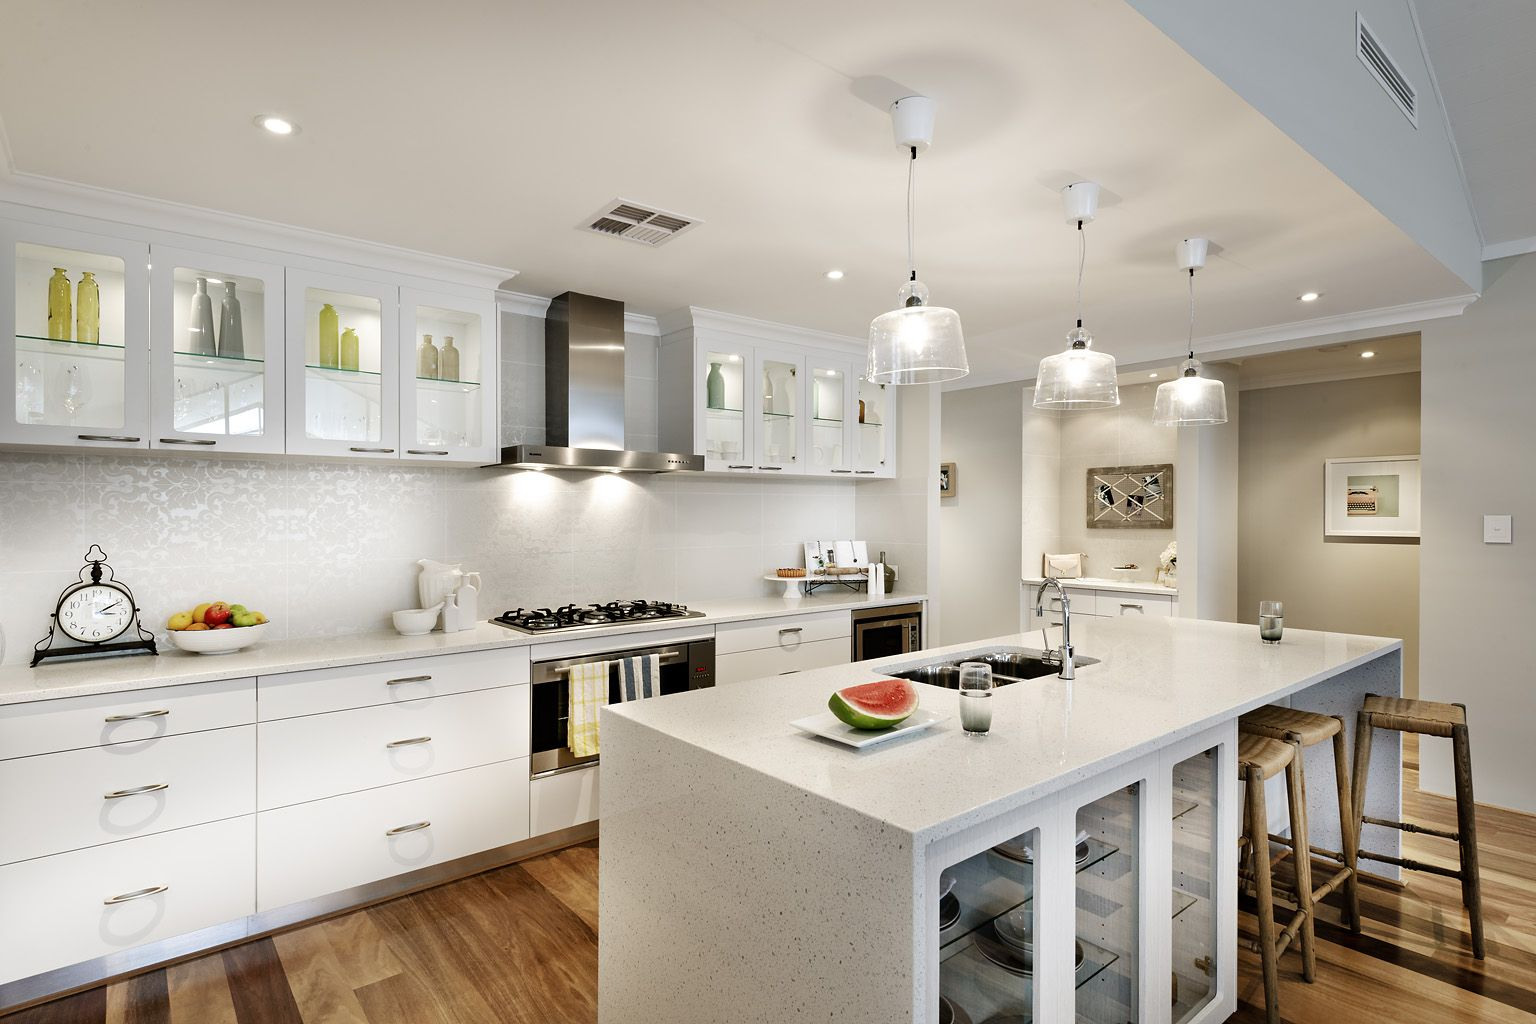 Modern White Kitchen Wood Floor Modern White Kitchen Wood Floor Ideas 614666 Kitchen Ideas Design